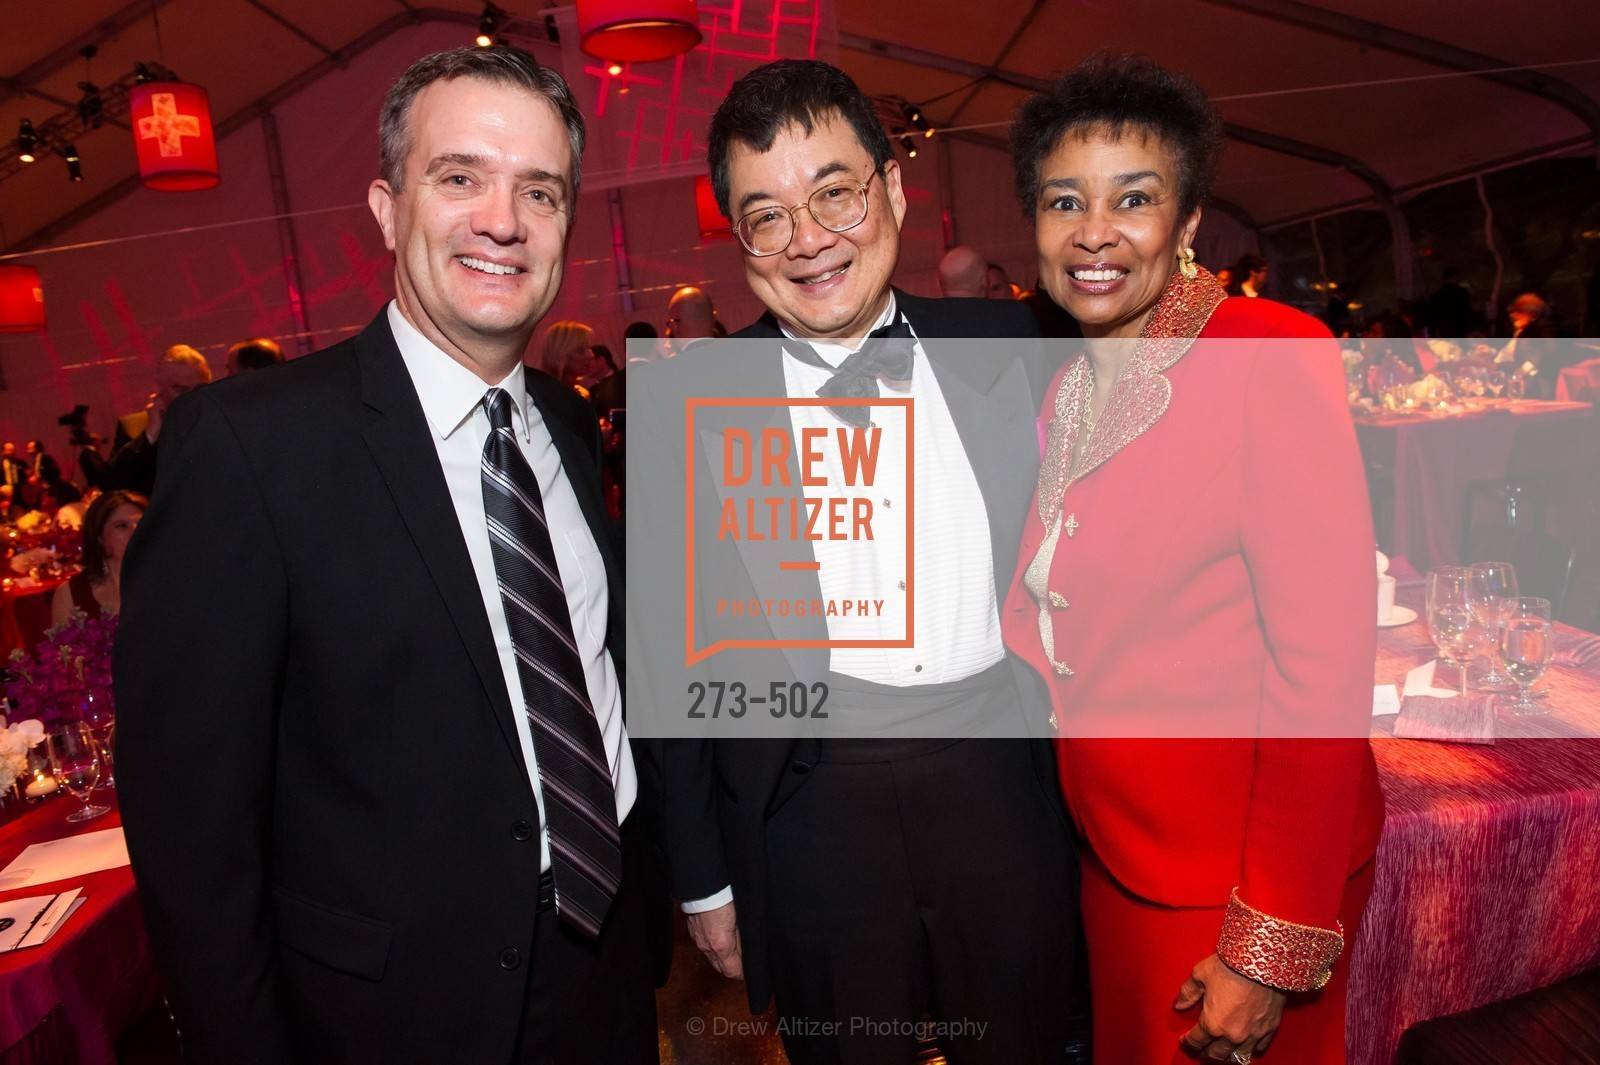 Bob Brown, Leo Soong, Anette Harris, 2014 RED CROSS Gala Honoring Paula Downey as the American Red Cross Bay Area Chapter Humanitarian CEO of the Year, US. Treasure Island (The Great Lawn), April 5th, 2014,Drew Altizer, Drew Altizer Photography, full-service agency, private events, San Francisco photographer, photographer california